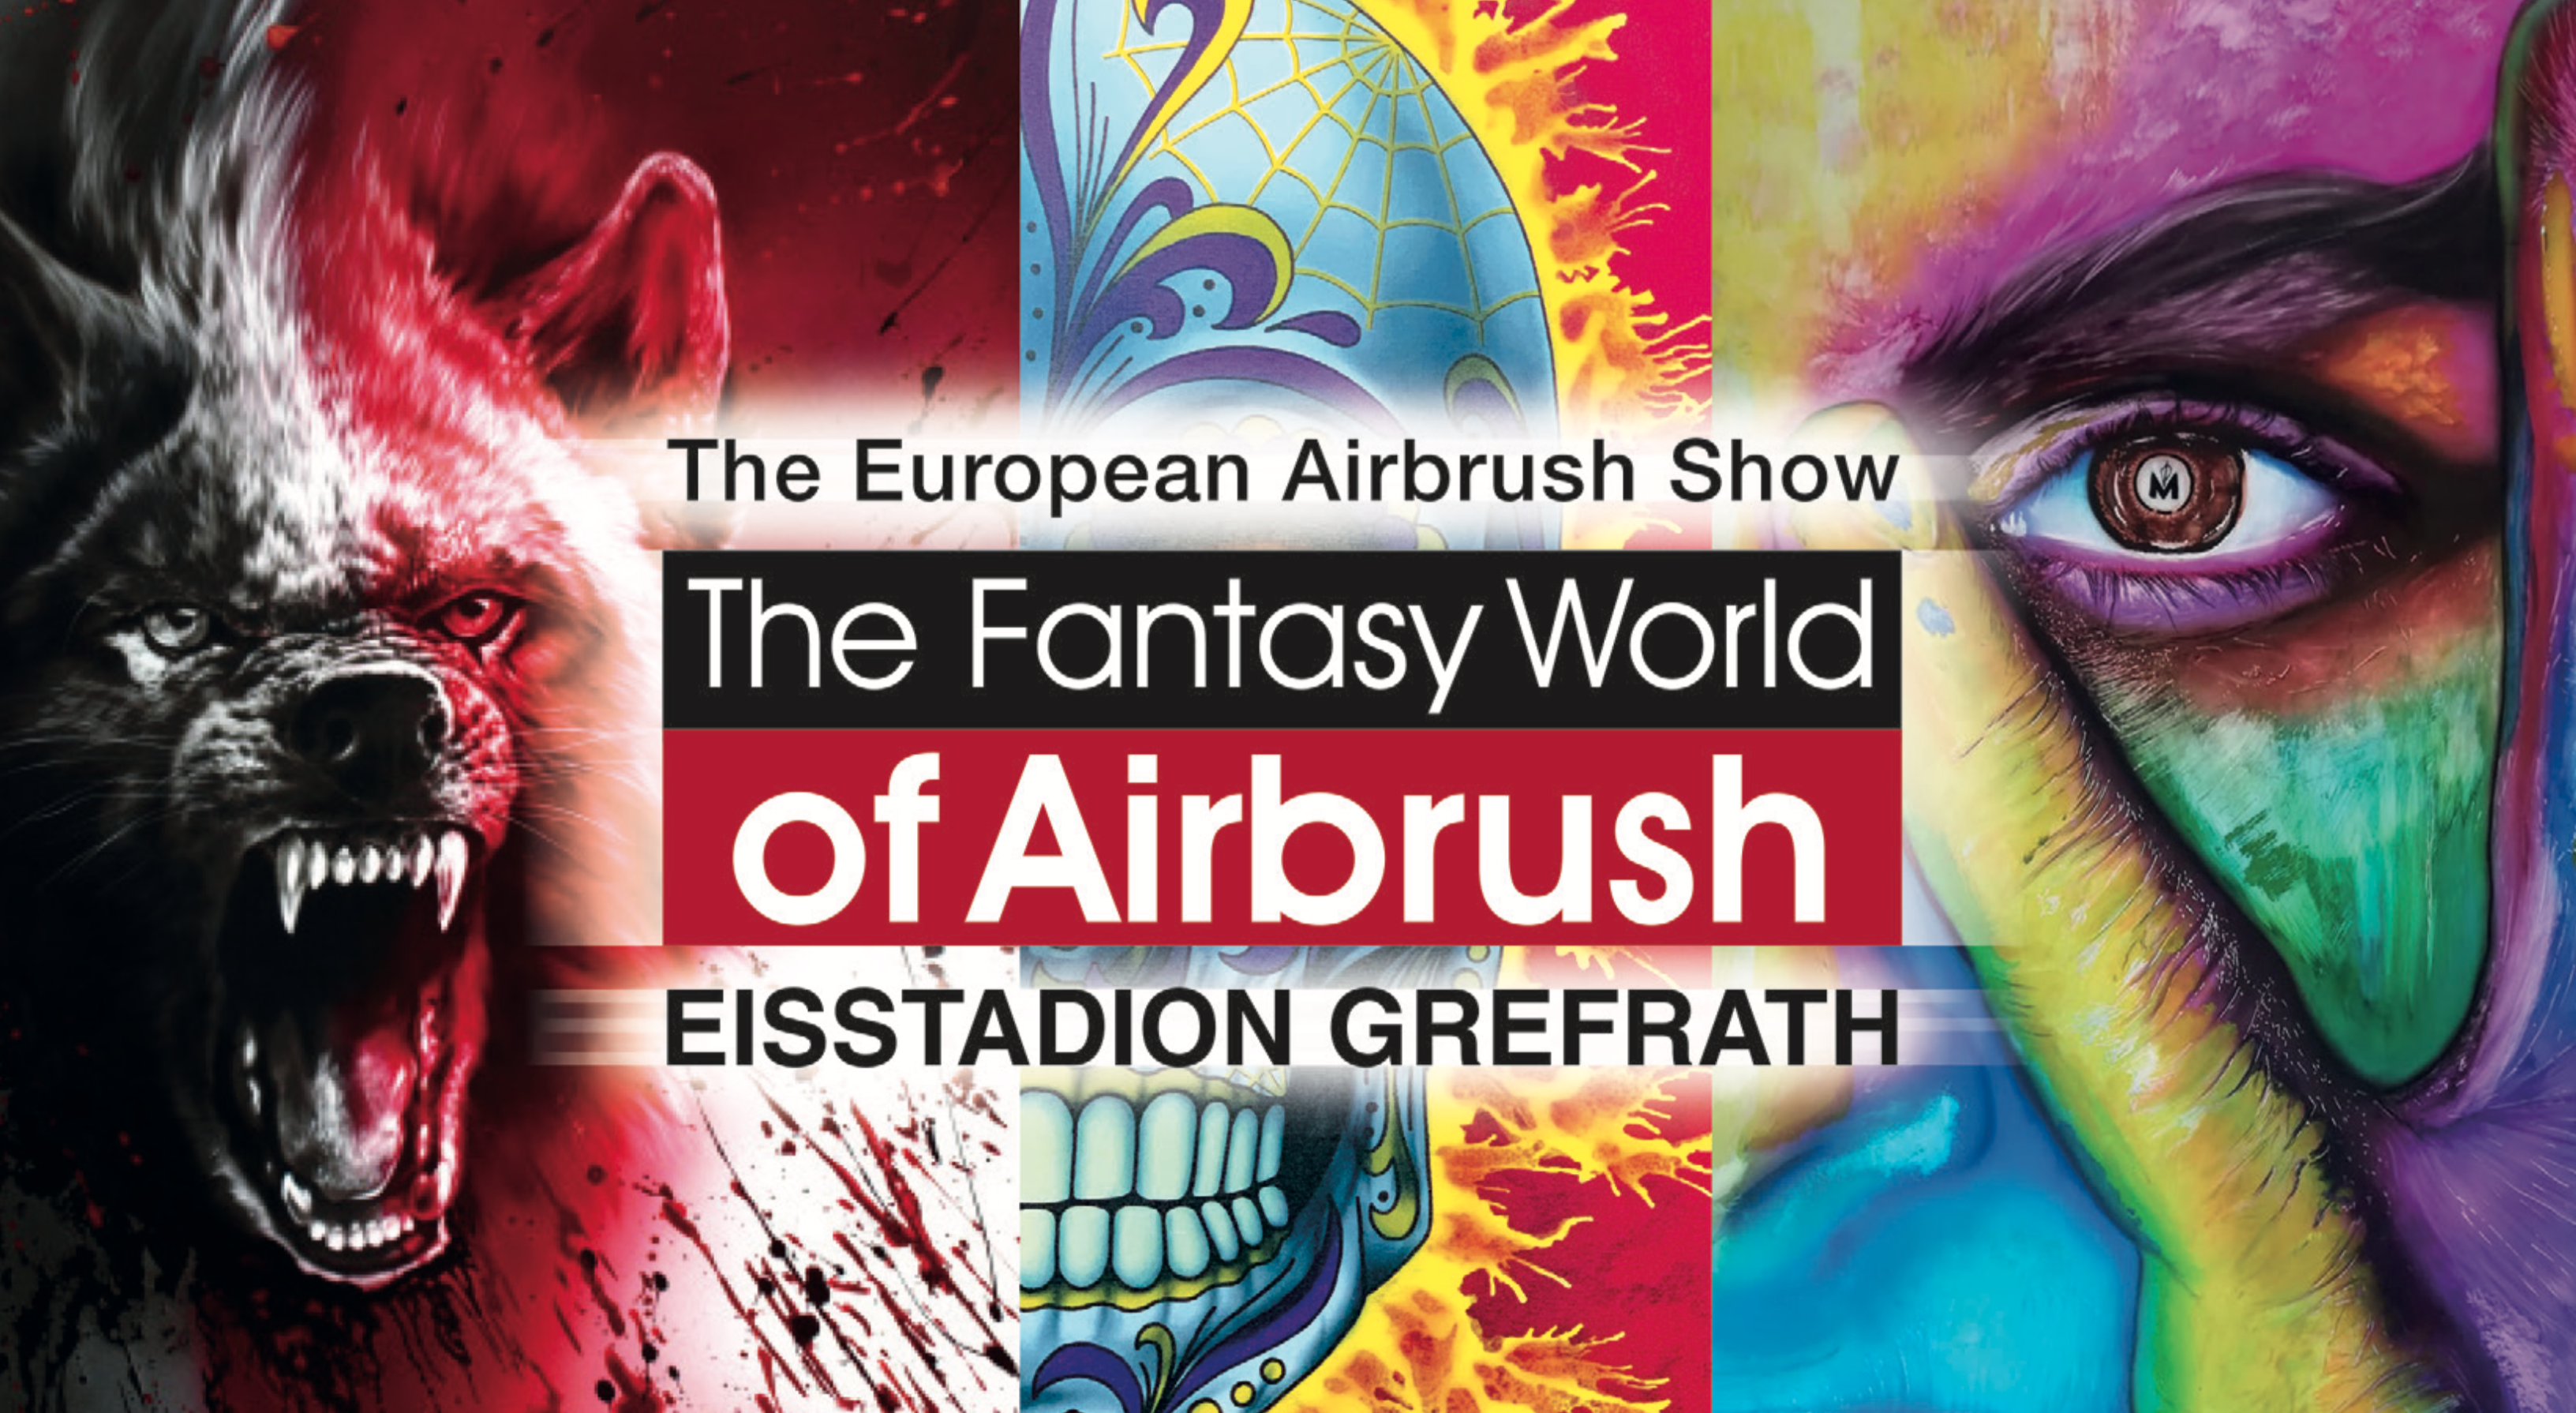 Become part of the Fantasy World of Airbrush!